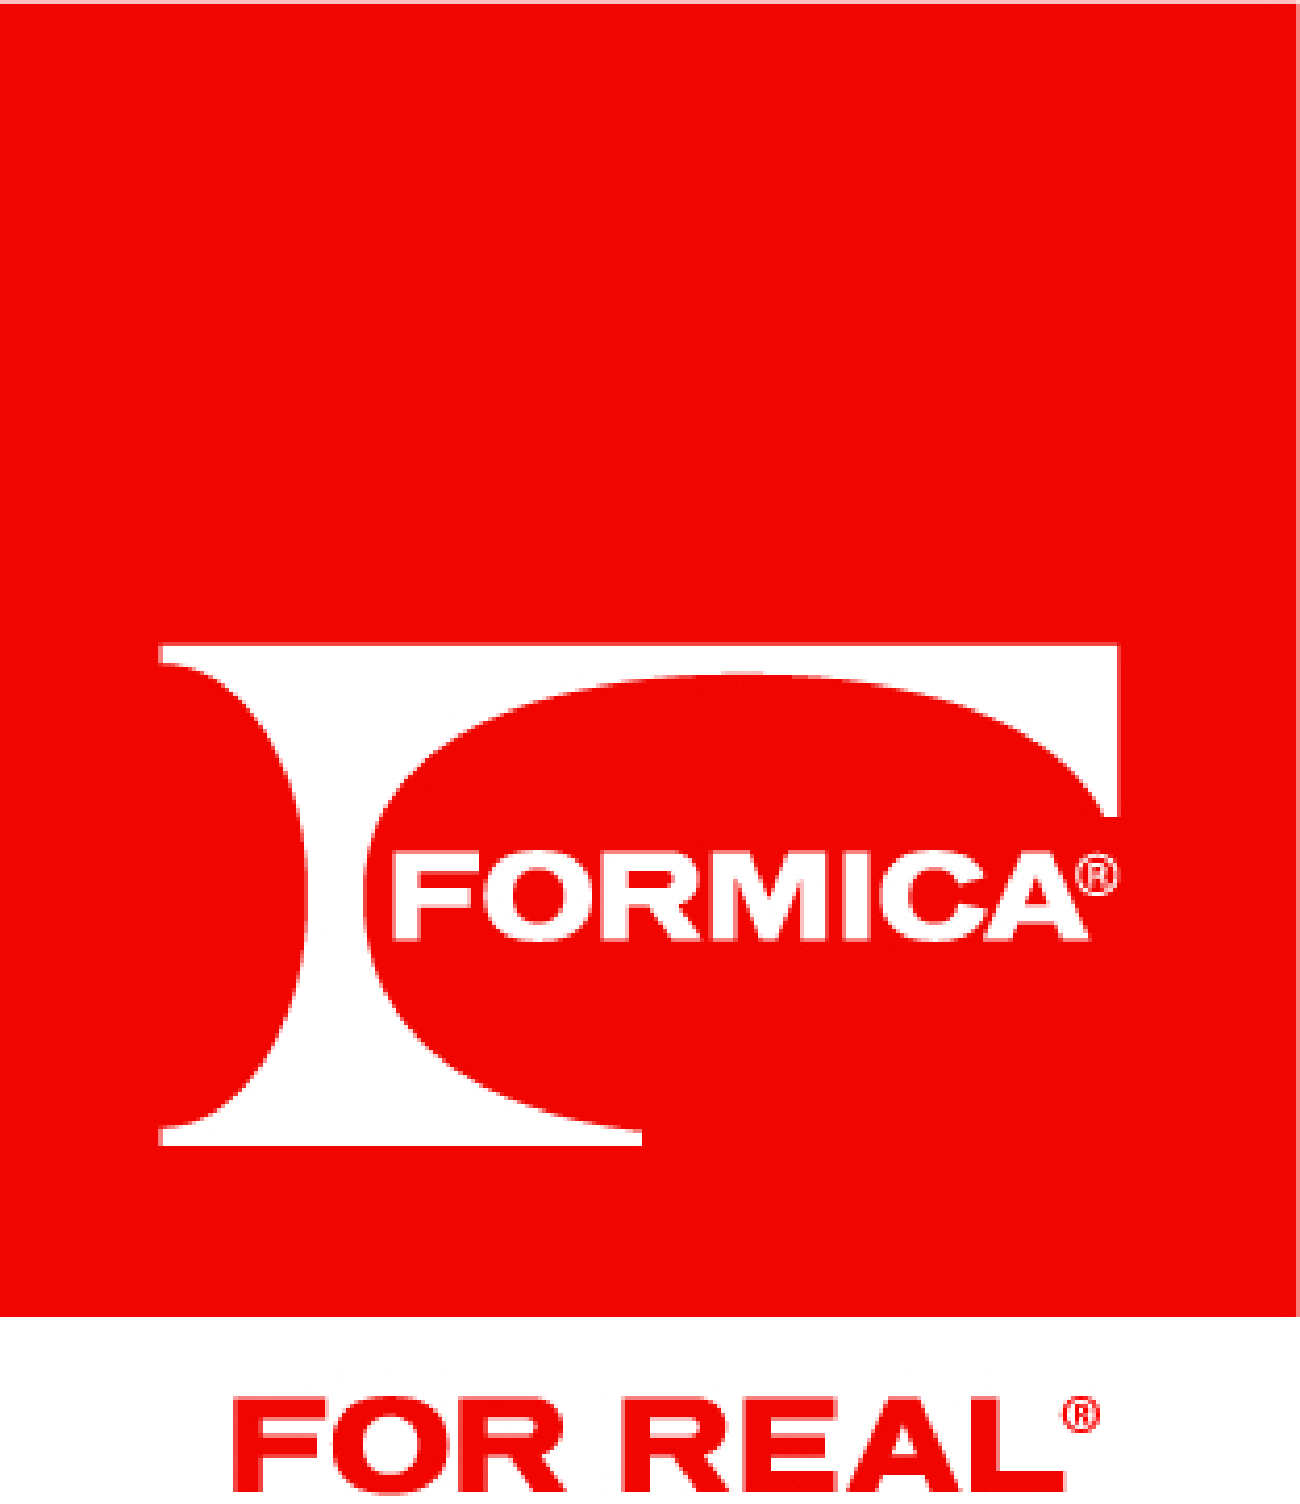 Formica Group logo.